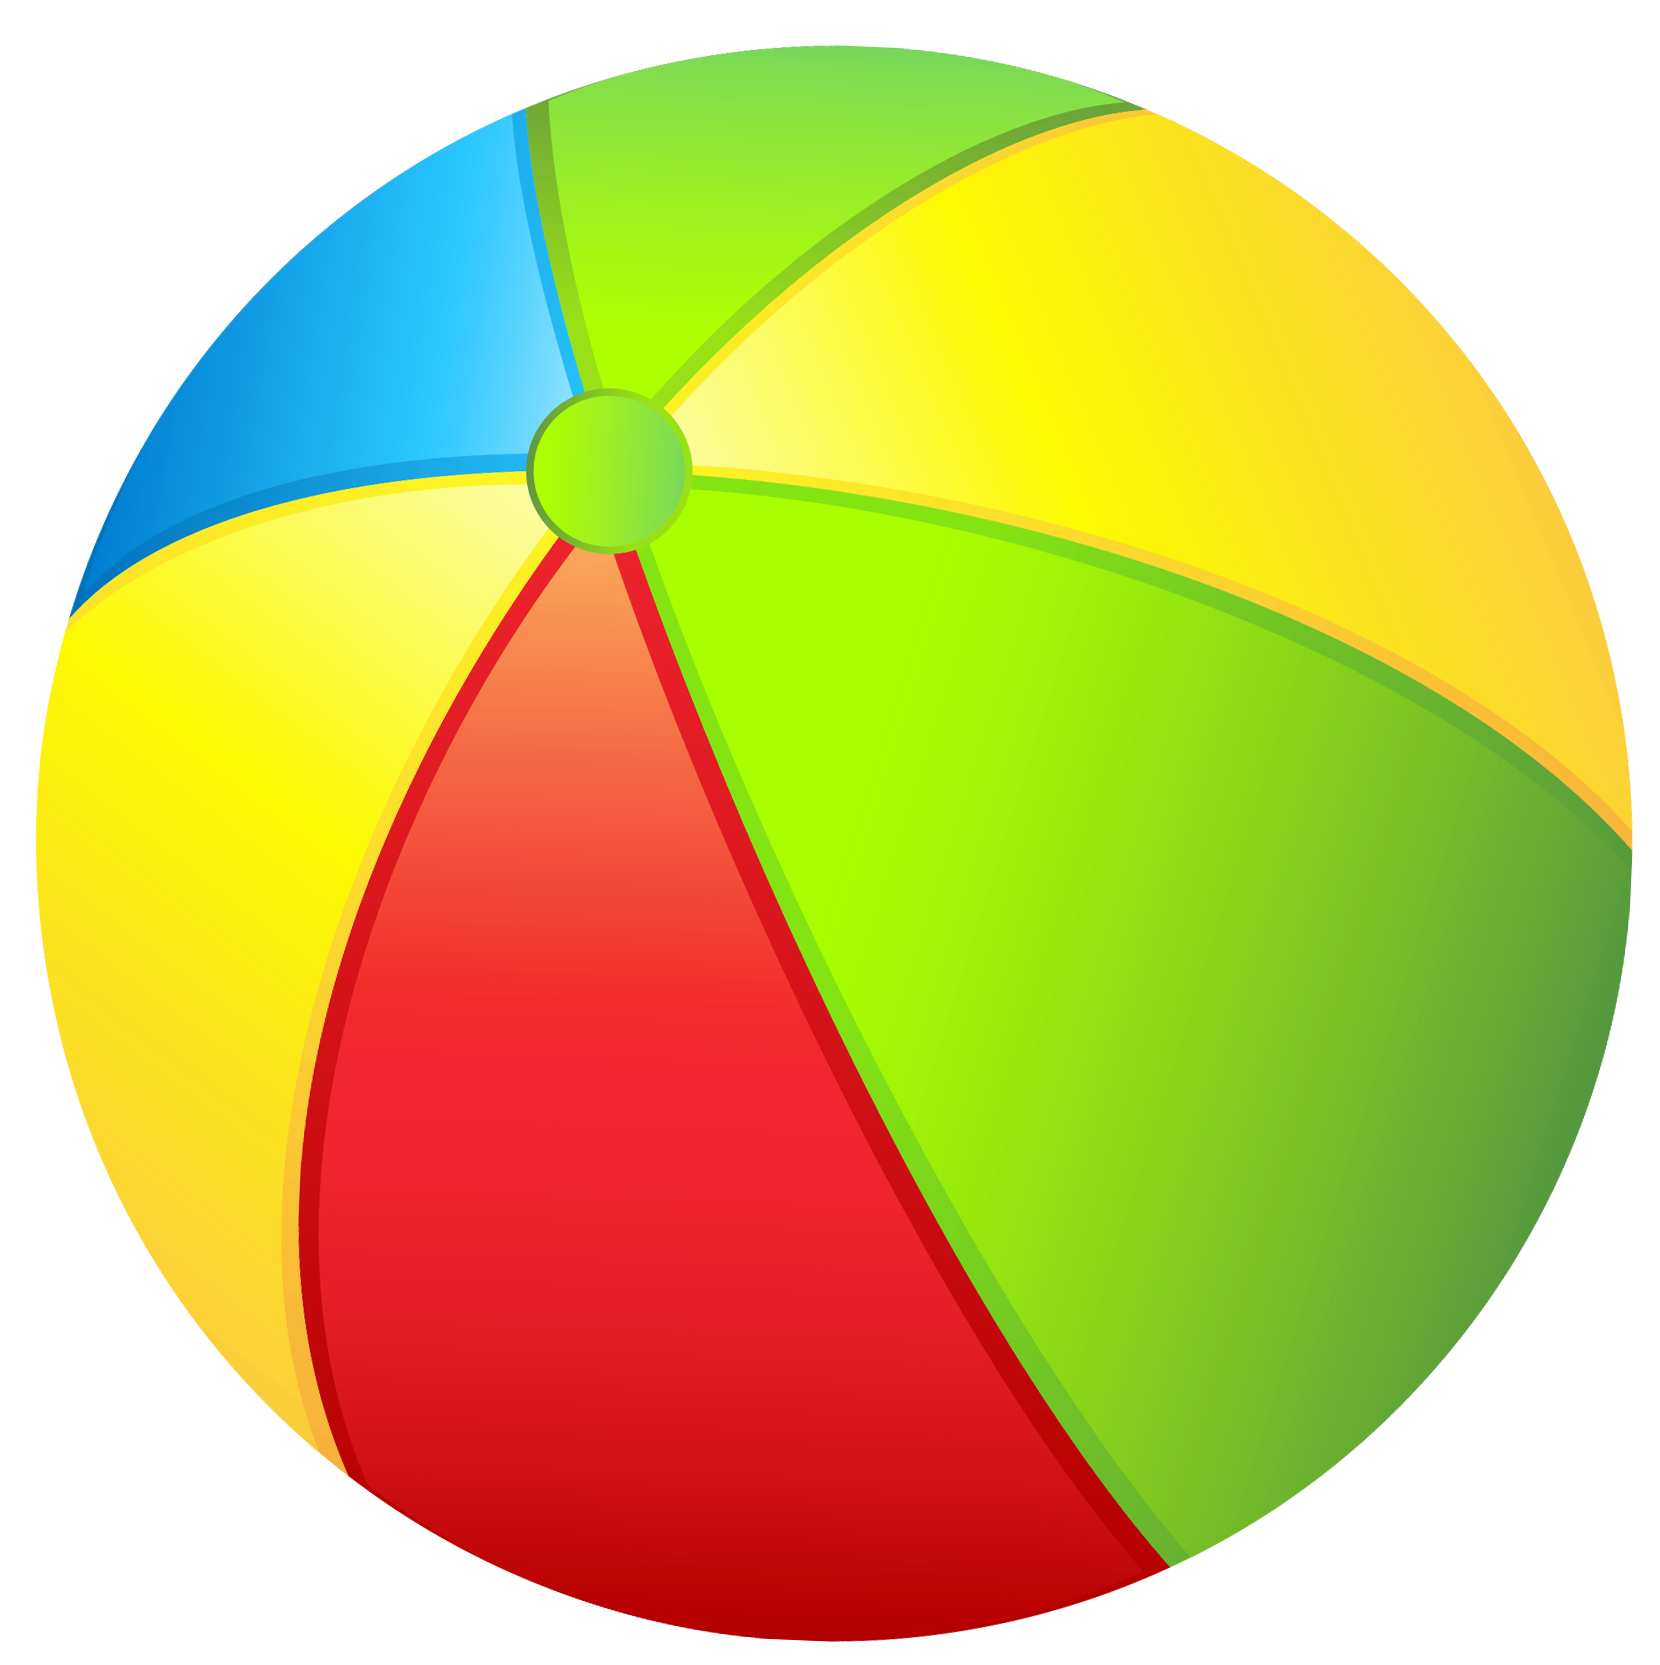 Ball clipart #15, Download drawings